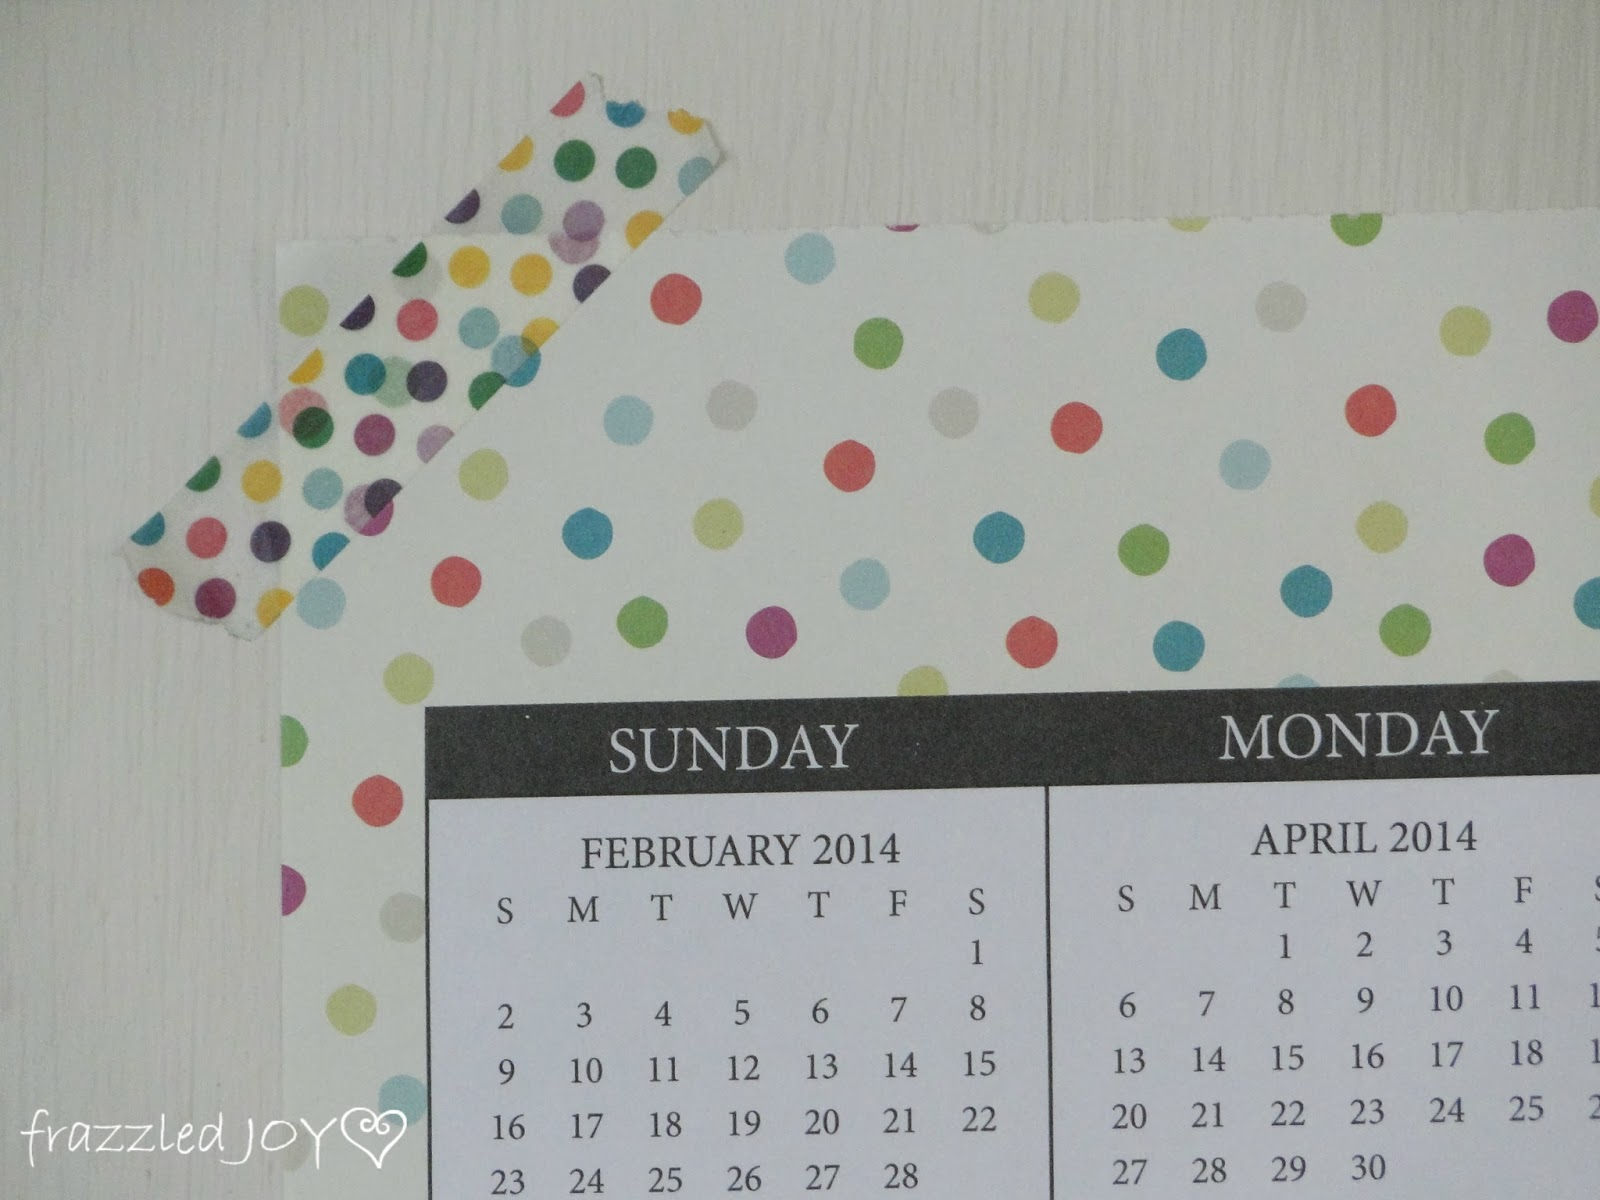 Washi tape is a great damage free way to hang calendars or other papers on the wall.